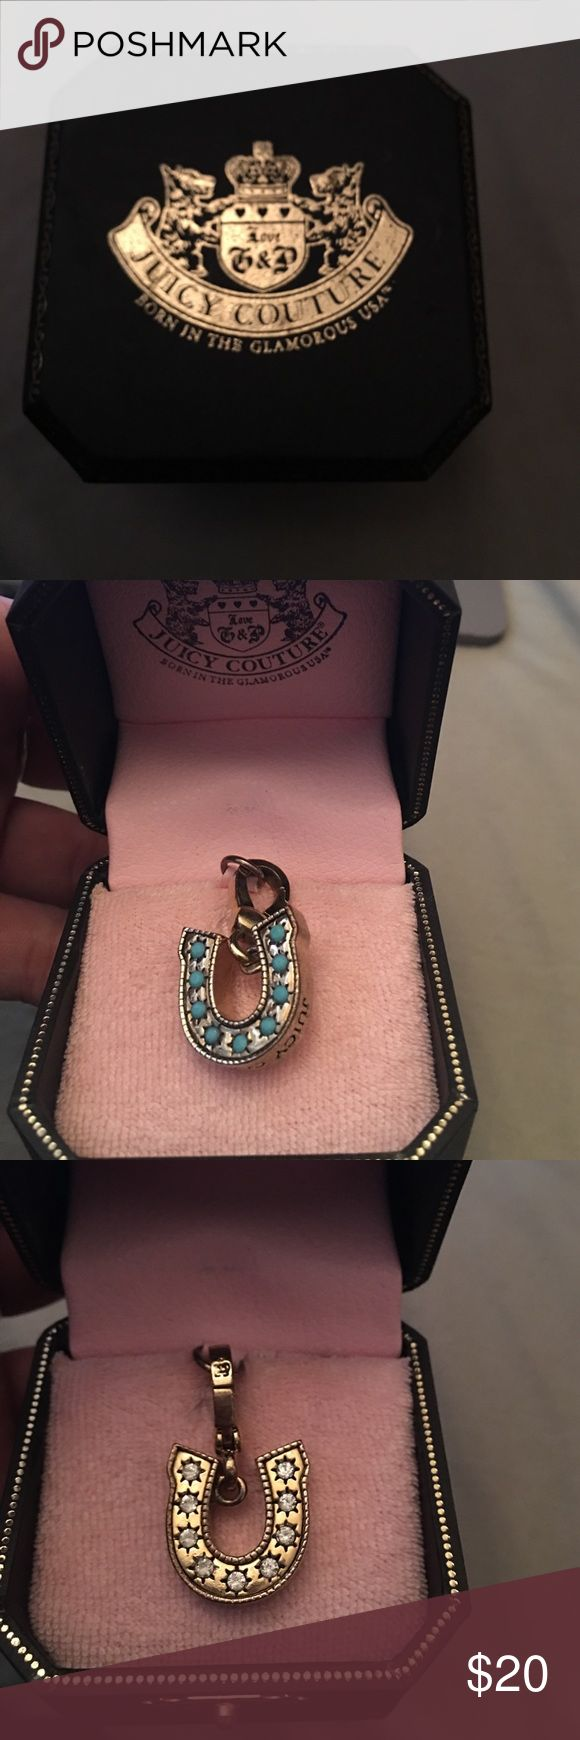 Gold tone Rare Juicy Couture horseshoe charm For sale I have a rare Juicy Couture gold tone horseshoe charm. All beading and jewels intact. Authentic comes in original box. Juicy Couture Jewelry Bracelets